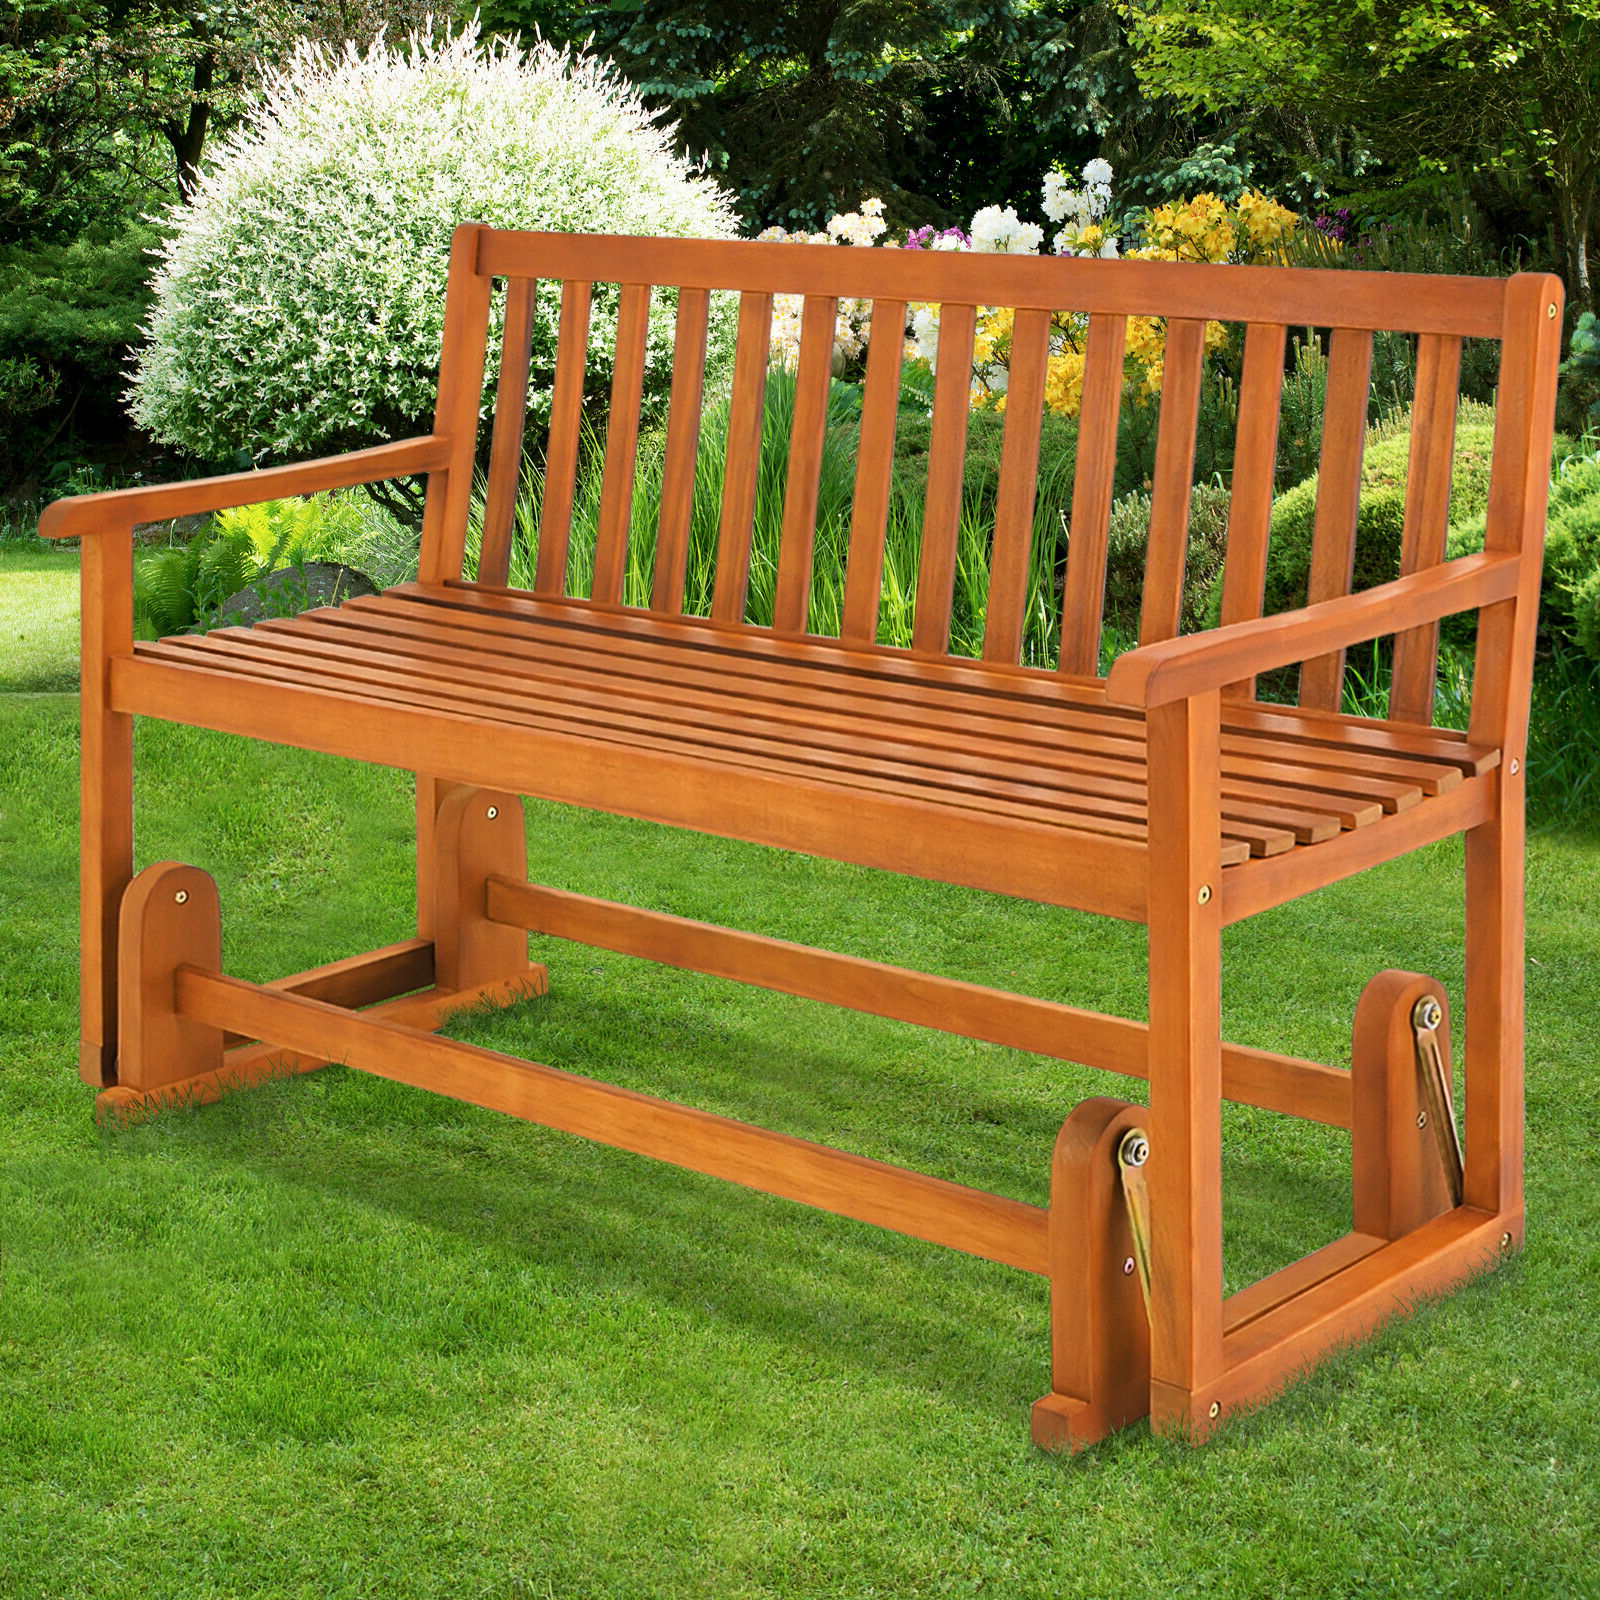 Most Popular Rocking Glider Benches Throughout Wooden Swinging Seater Bench Garden Outdoor Rocking Glider Benches Made Of (Gallery 16 of 30)